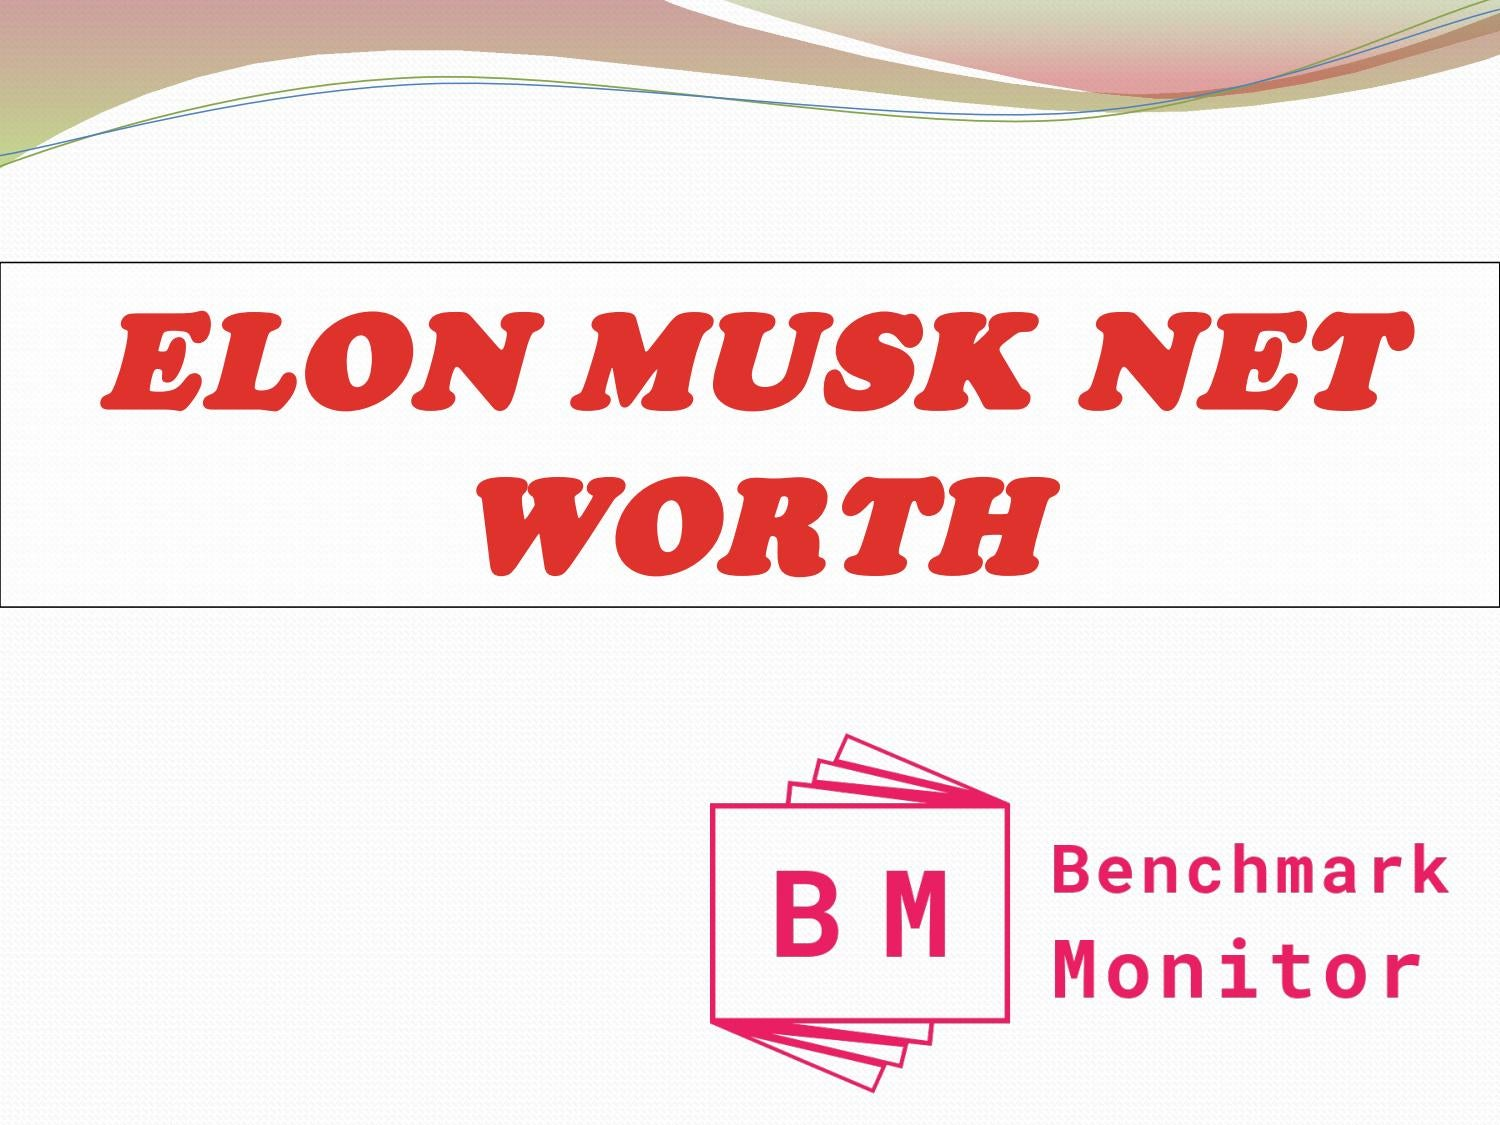 elon musk net worth by charlie noah issuu issuu